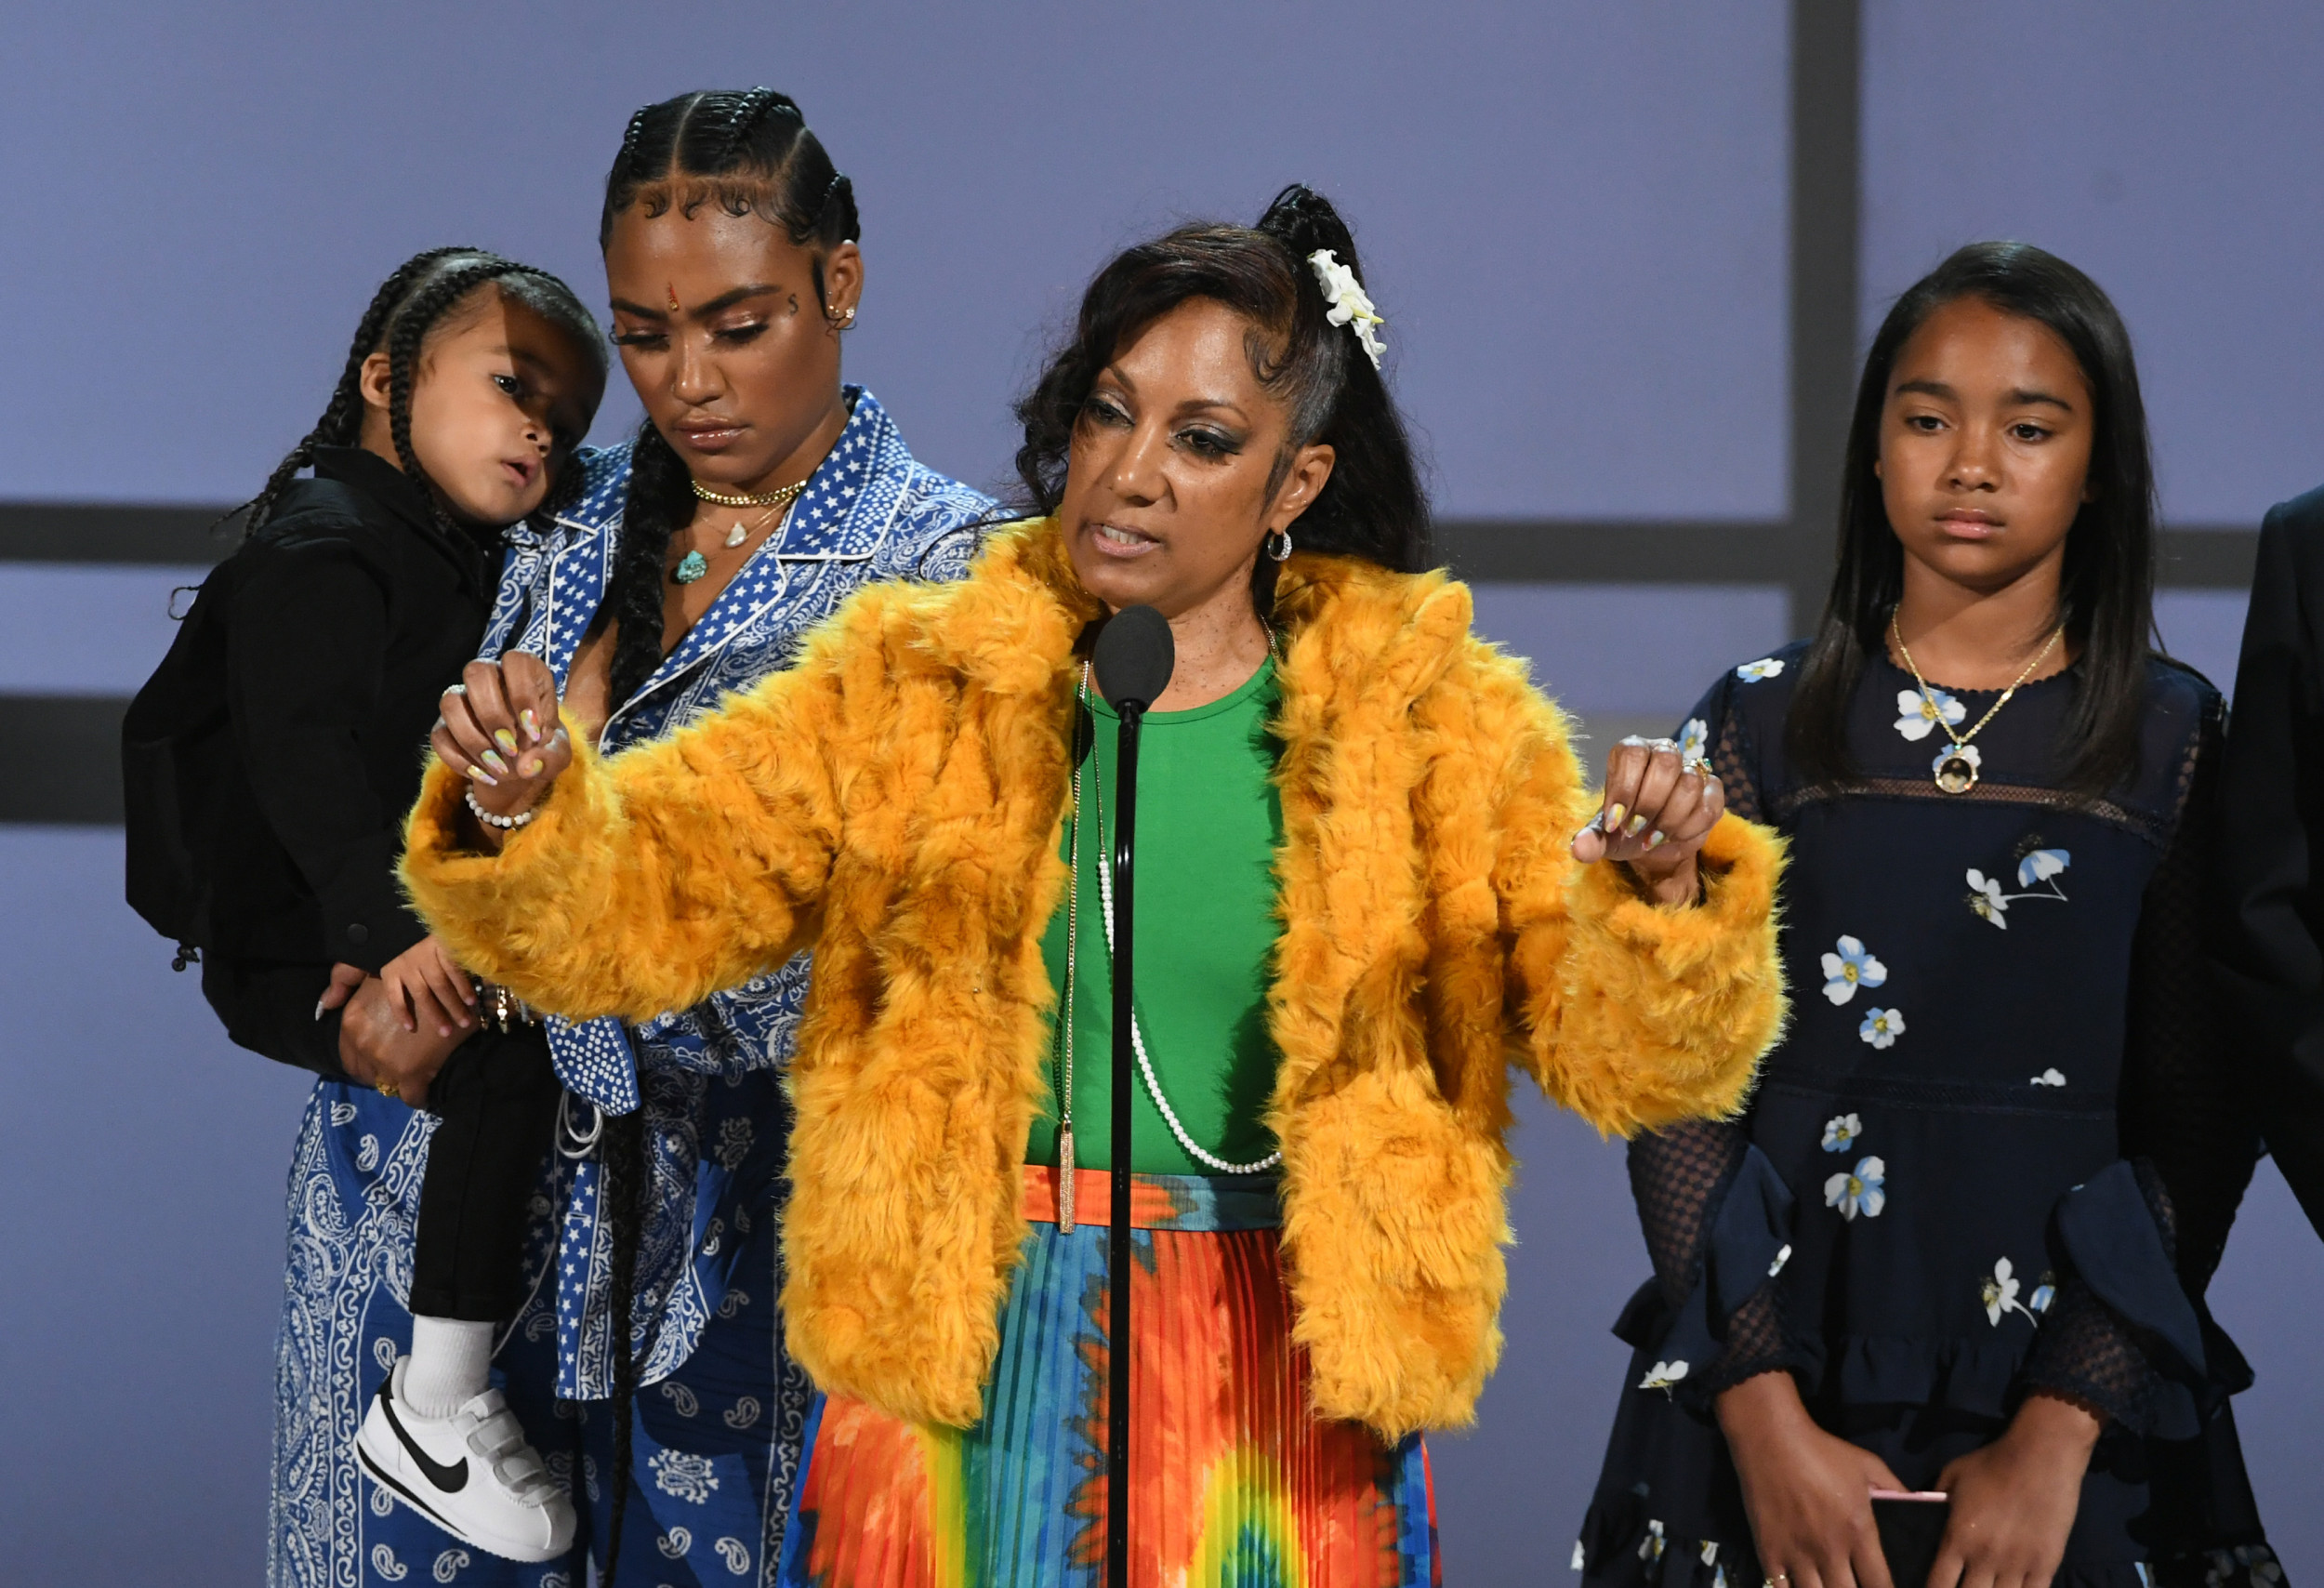 BET Awards: Watch Nipsey Hussle's Mother Pay Tribute to Late Rapper